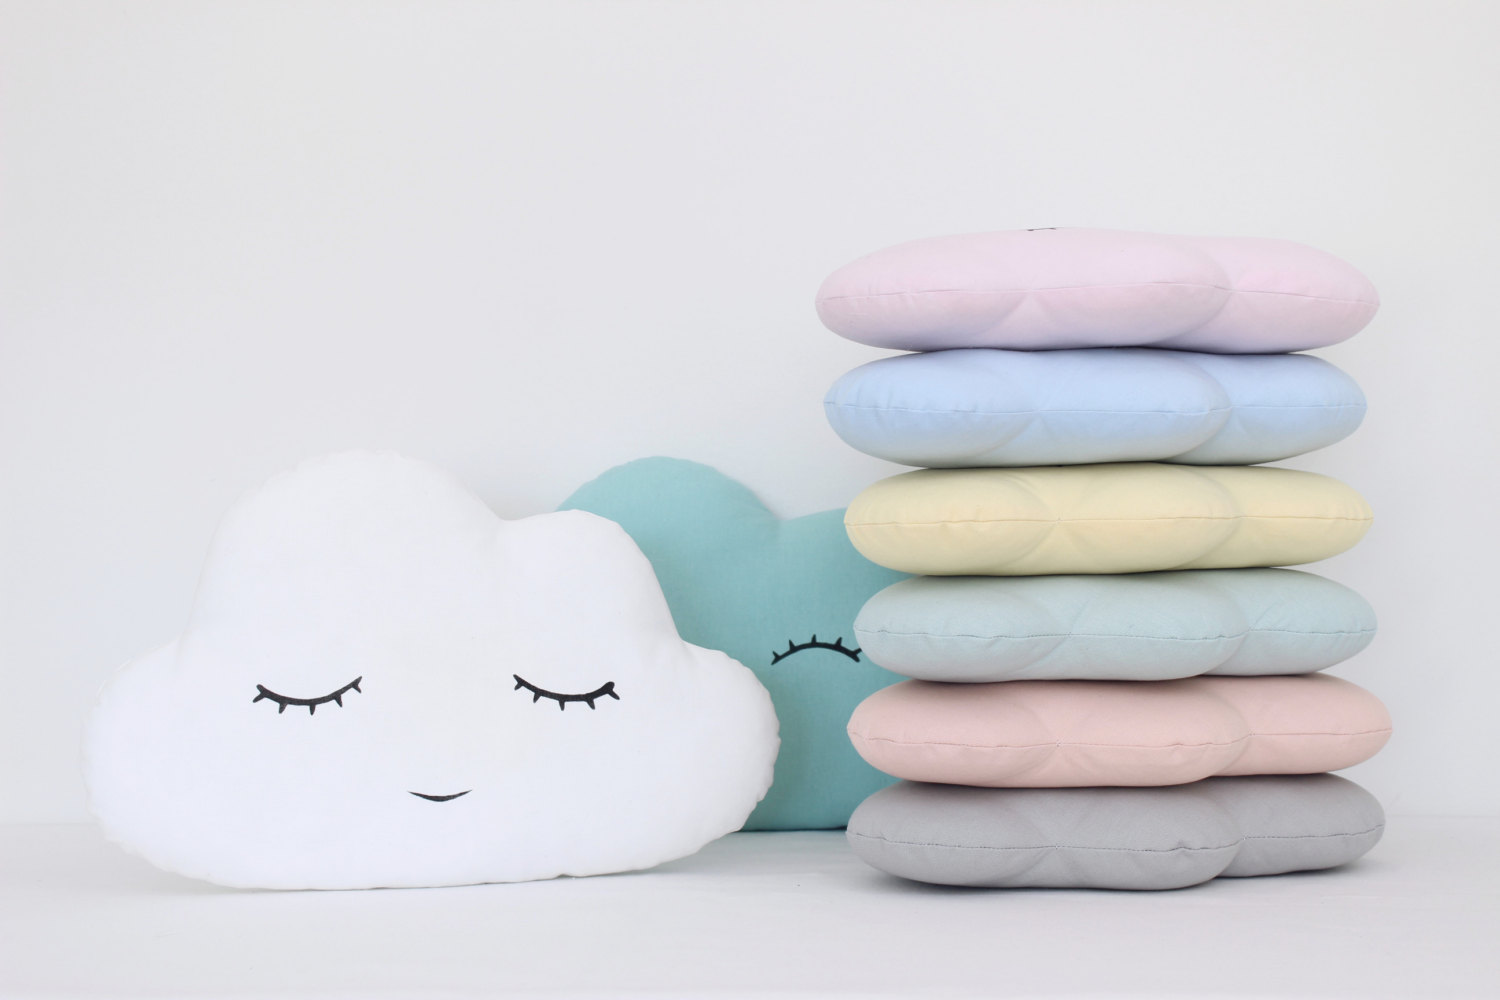 Cloud Pillow Eight Colors White Blue Mint Pale Yellow Pale Pink Baby Blue Turquoise Light Coral Or Gray Cloud Cushions